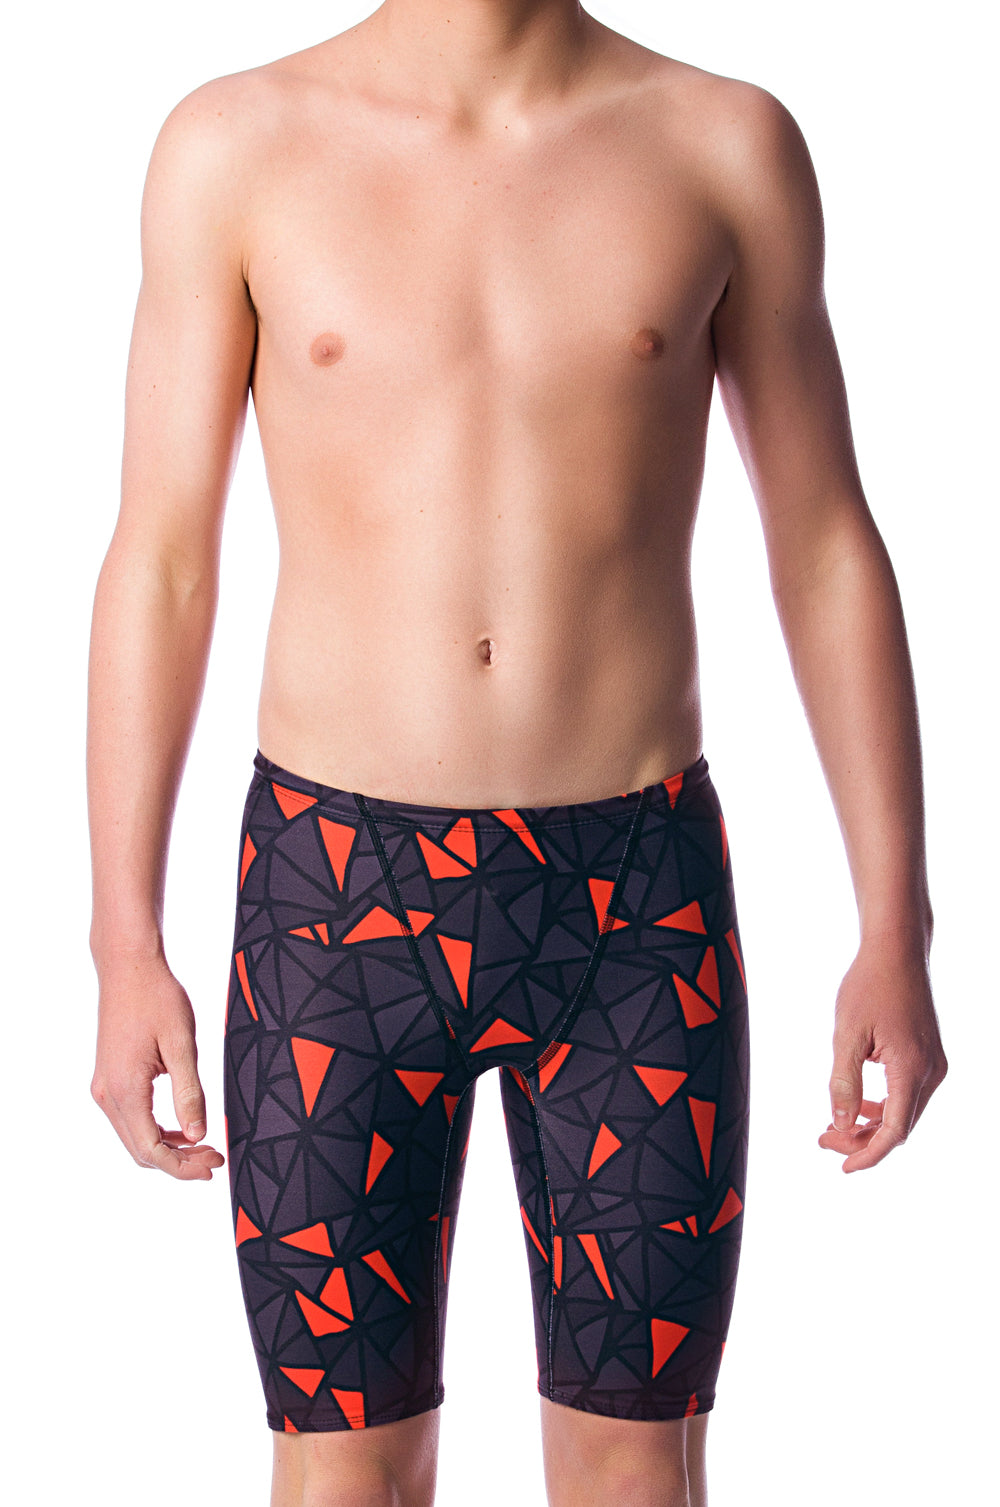 Marvel Boys Jammers - Shop Zealous Training Swimwear